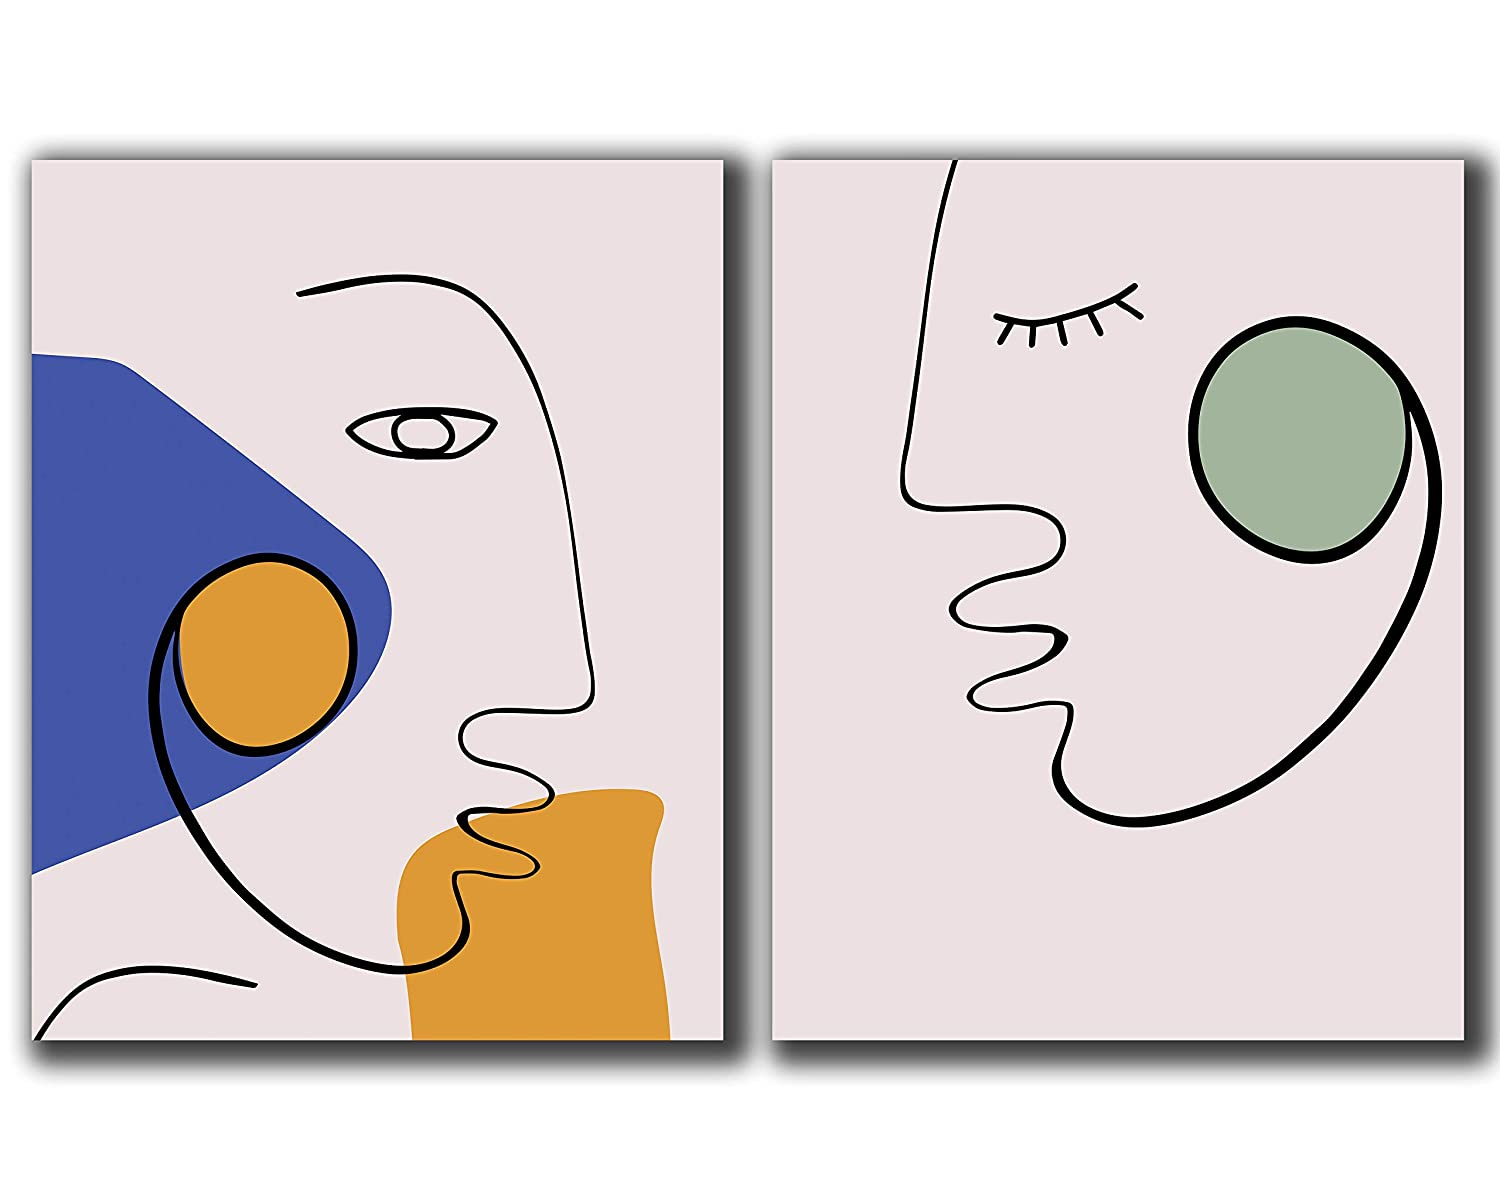 Contemporary Minimalist Faces Wall Art UNFRAME Challenge the lowest price of Japan ☆ Set 2-11x14